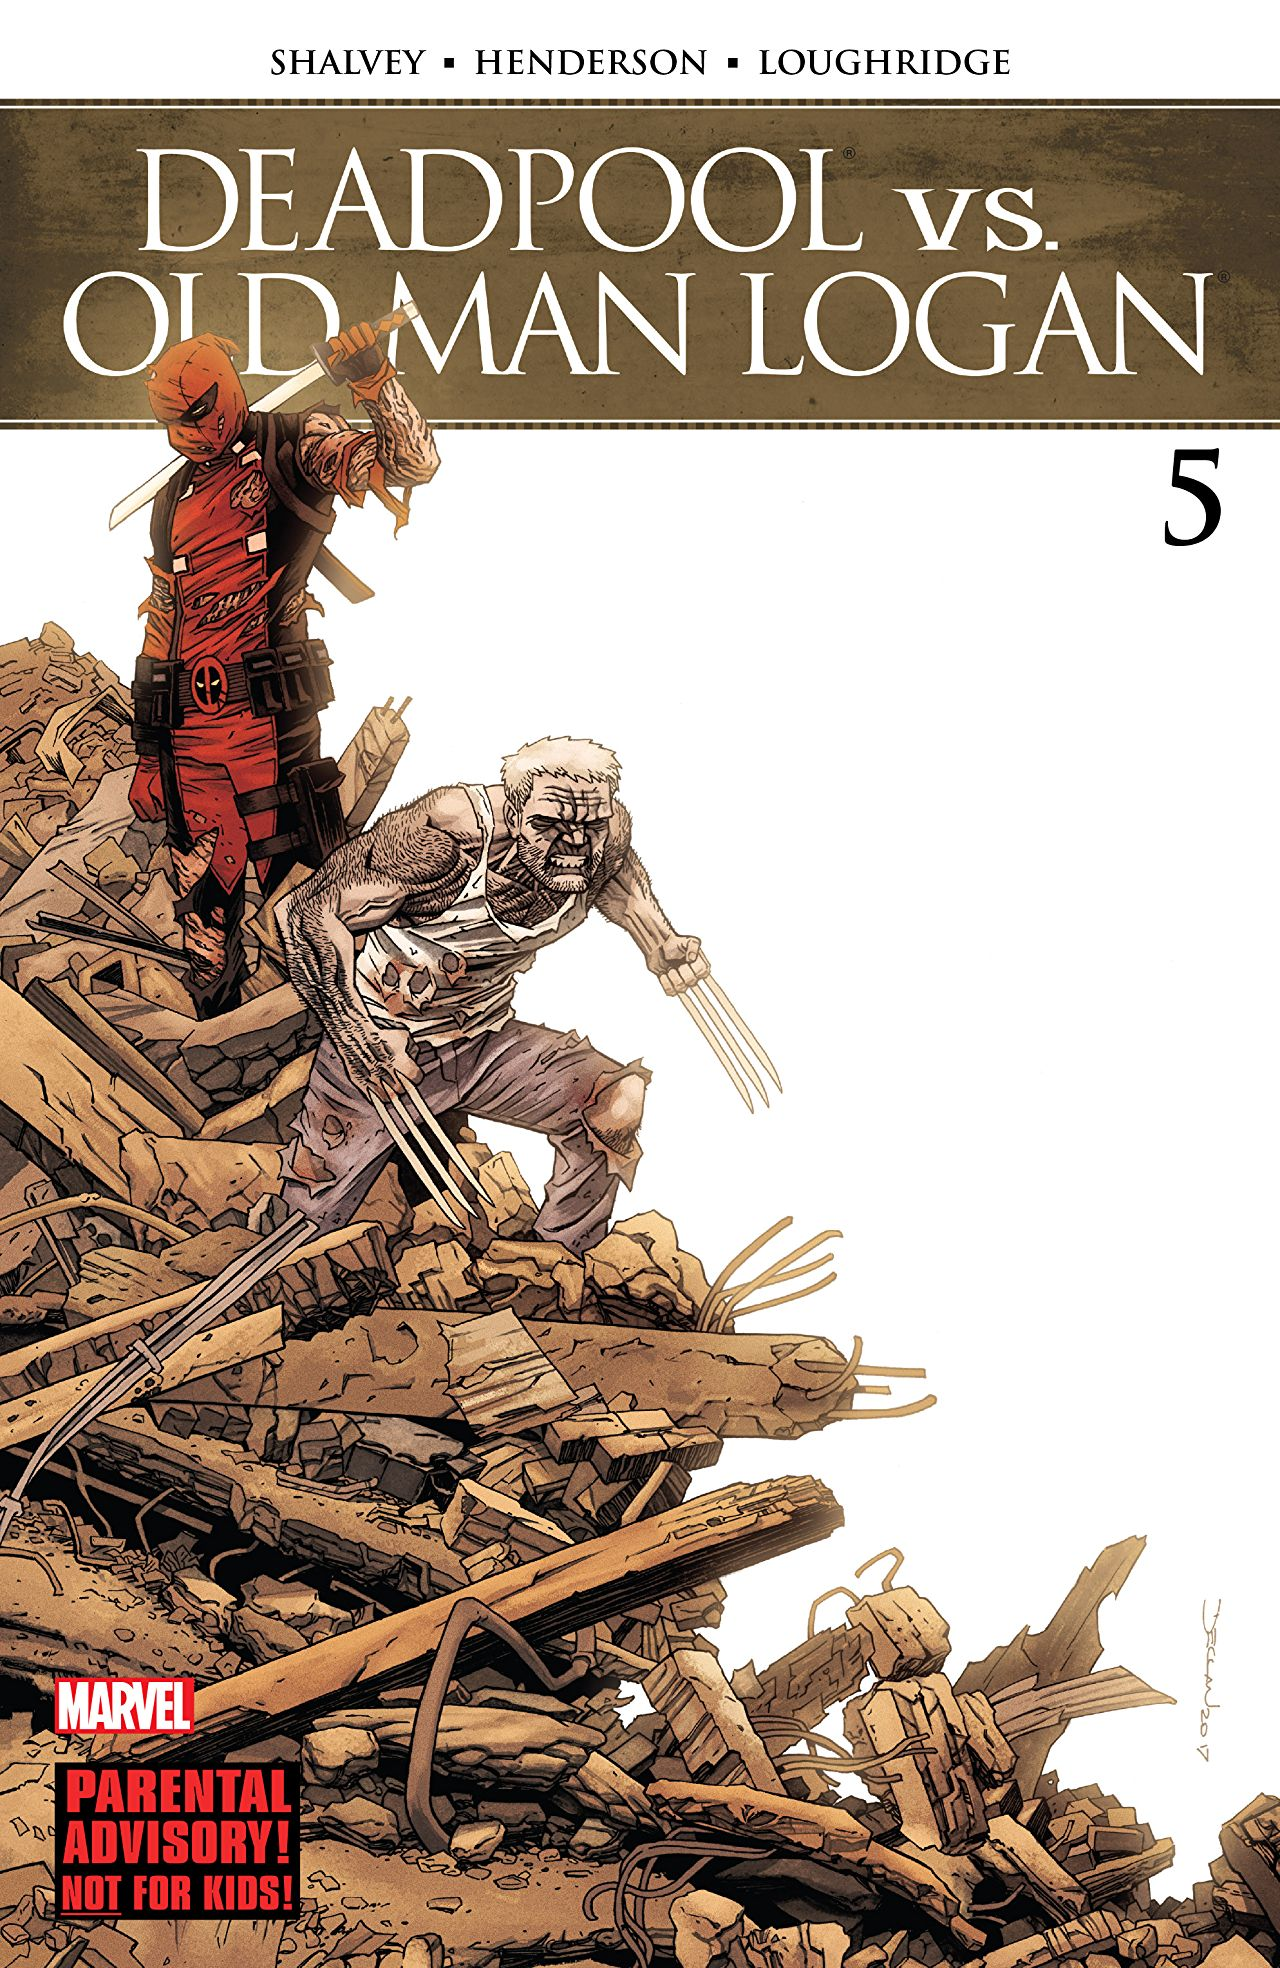 Deadpool vs. Old Man Logan #5